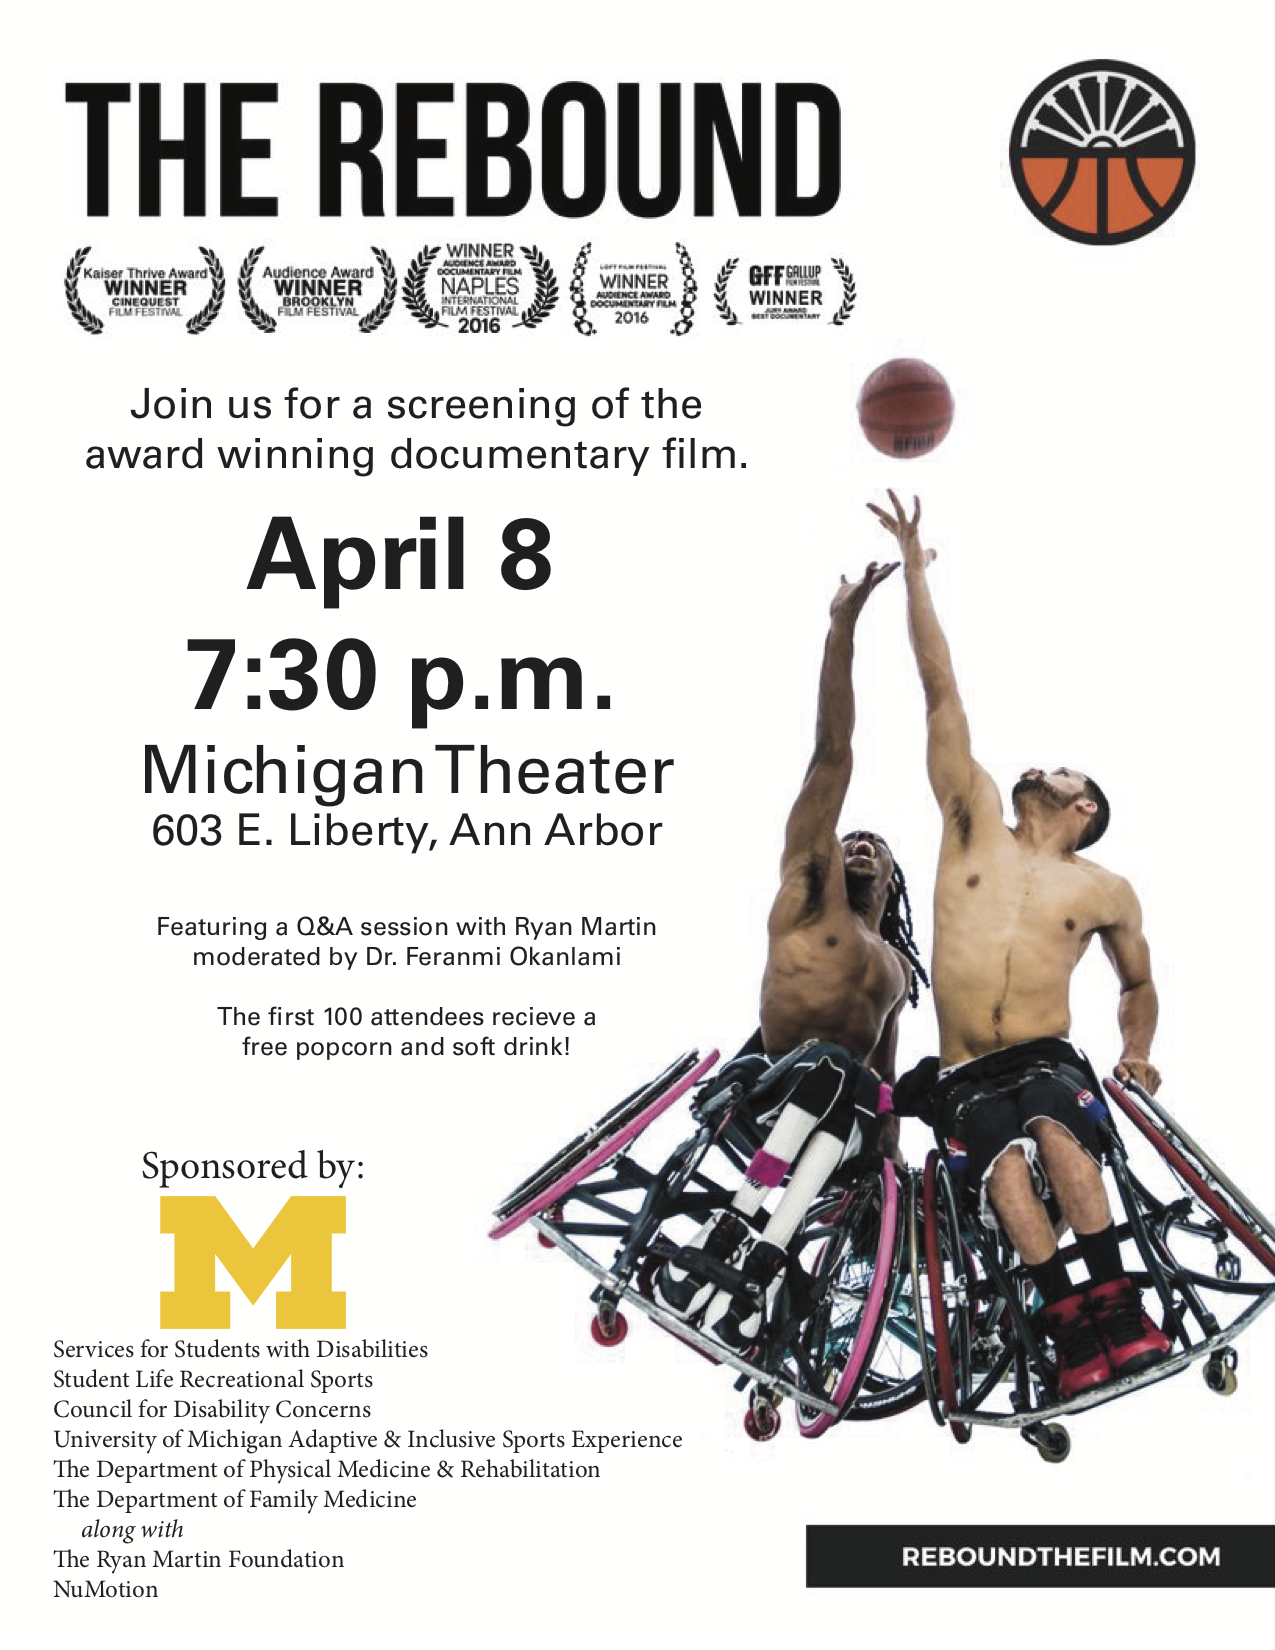 The rebound flyer photo of two players in wheelchairs reaching upward for basketball